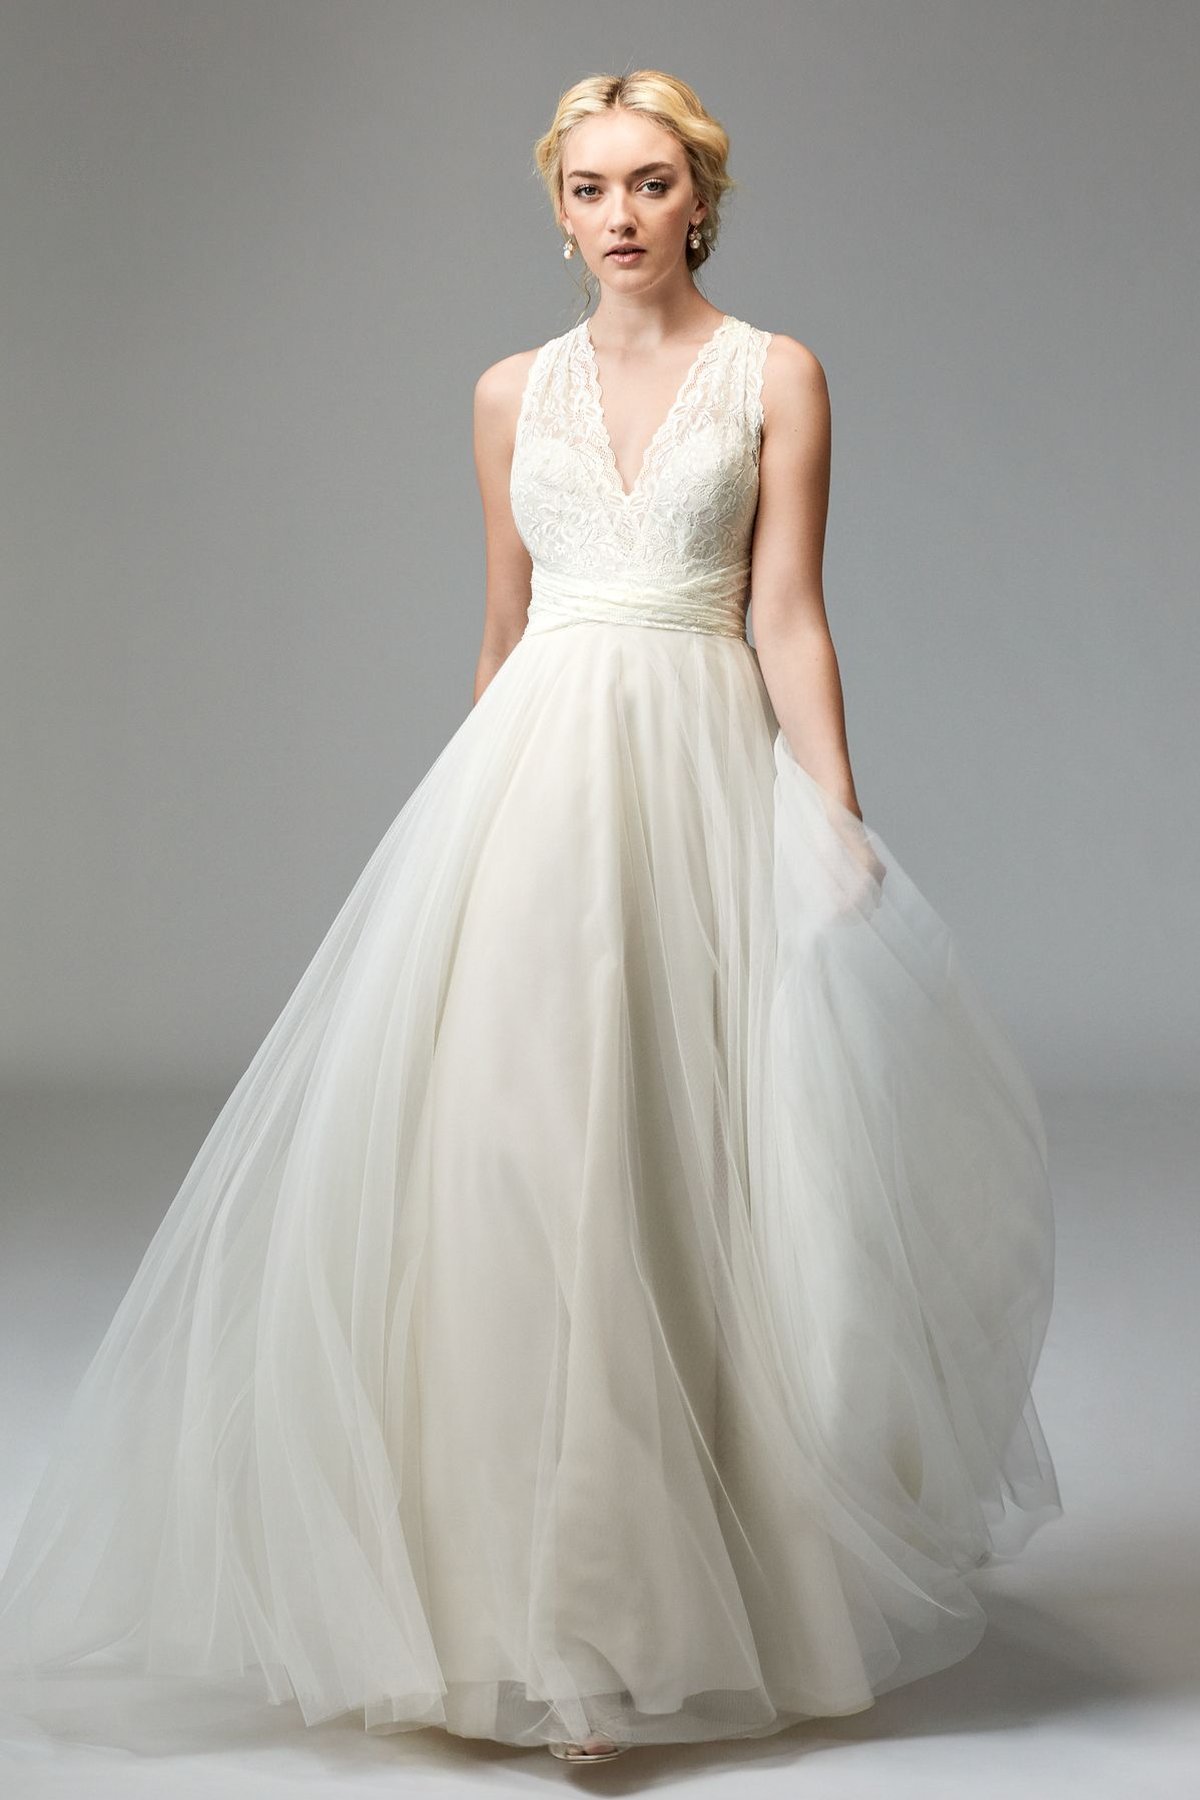 *WEDDING DRESS OF THE WEEK* Tilda from Willowby by Watters